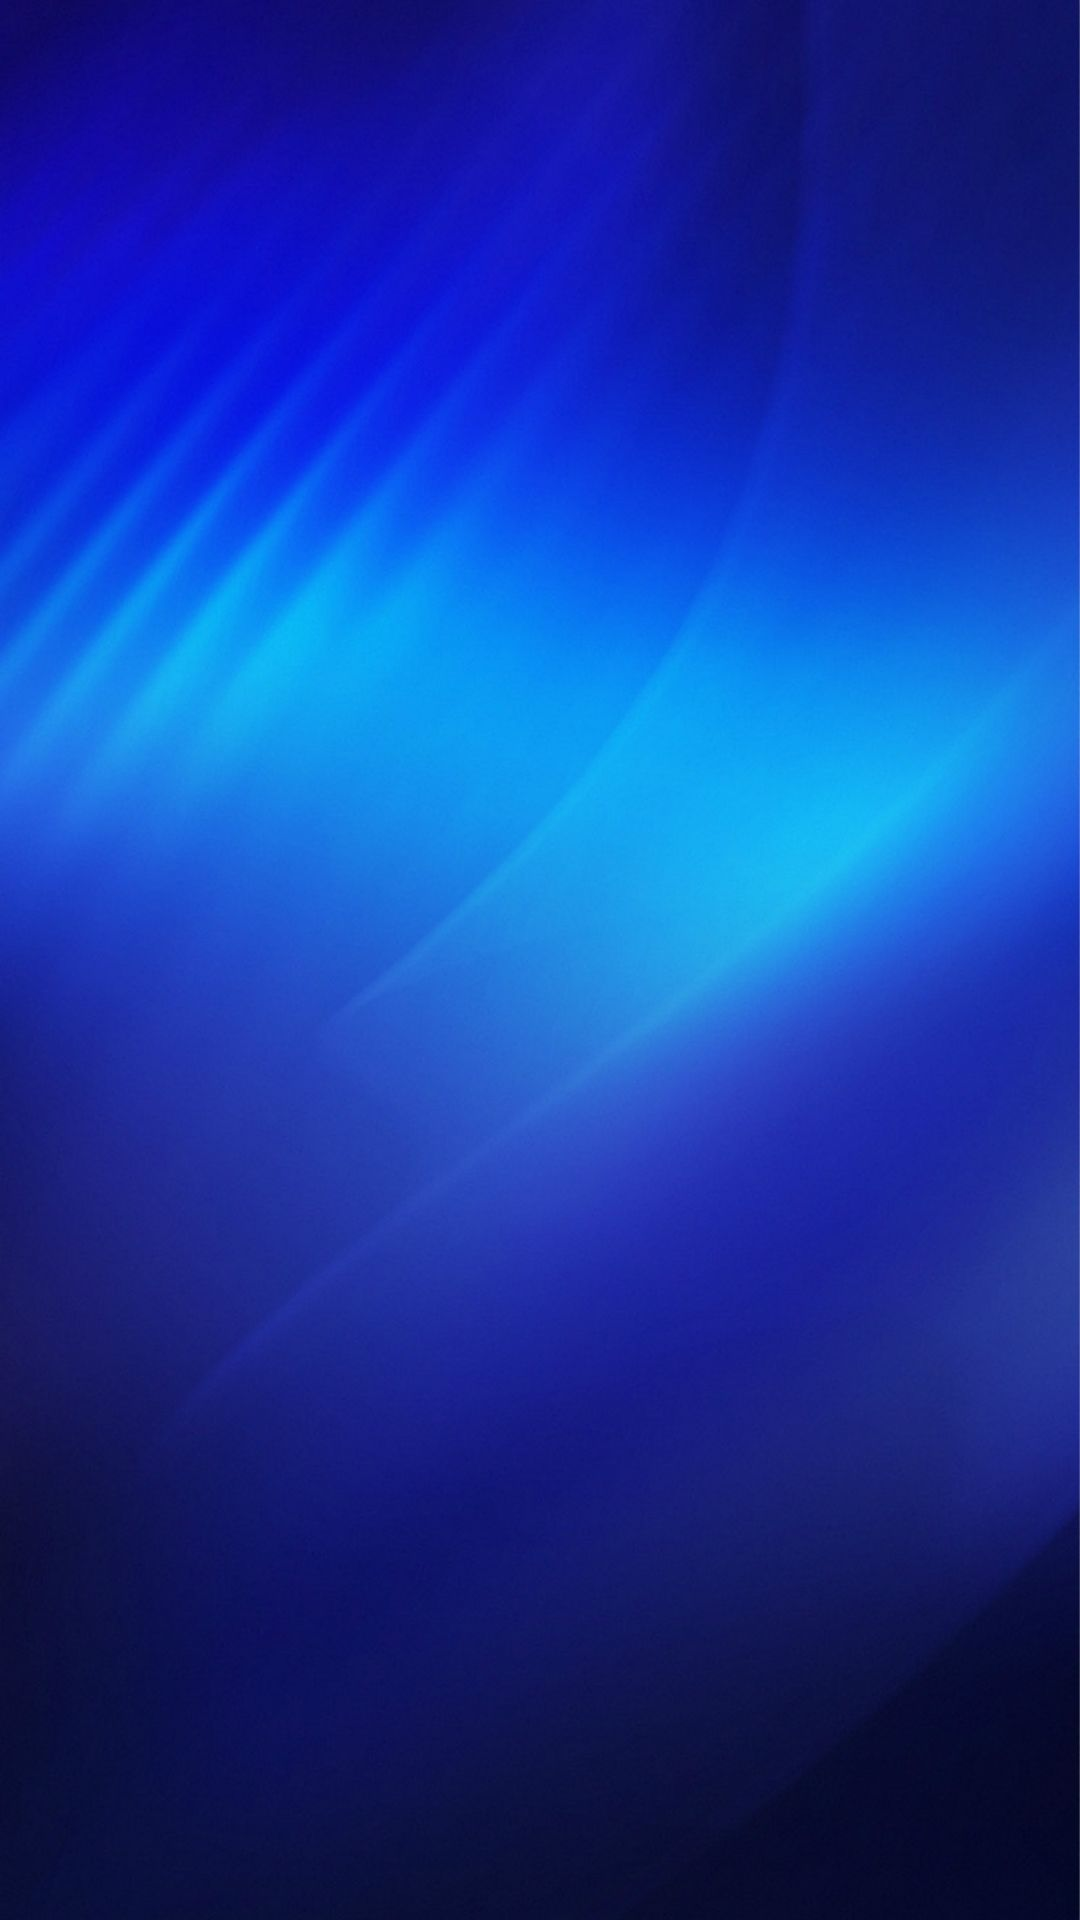 Abstract Blue Light Pattern iPhone 6 wallpaper Pattern